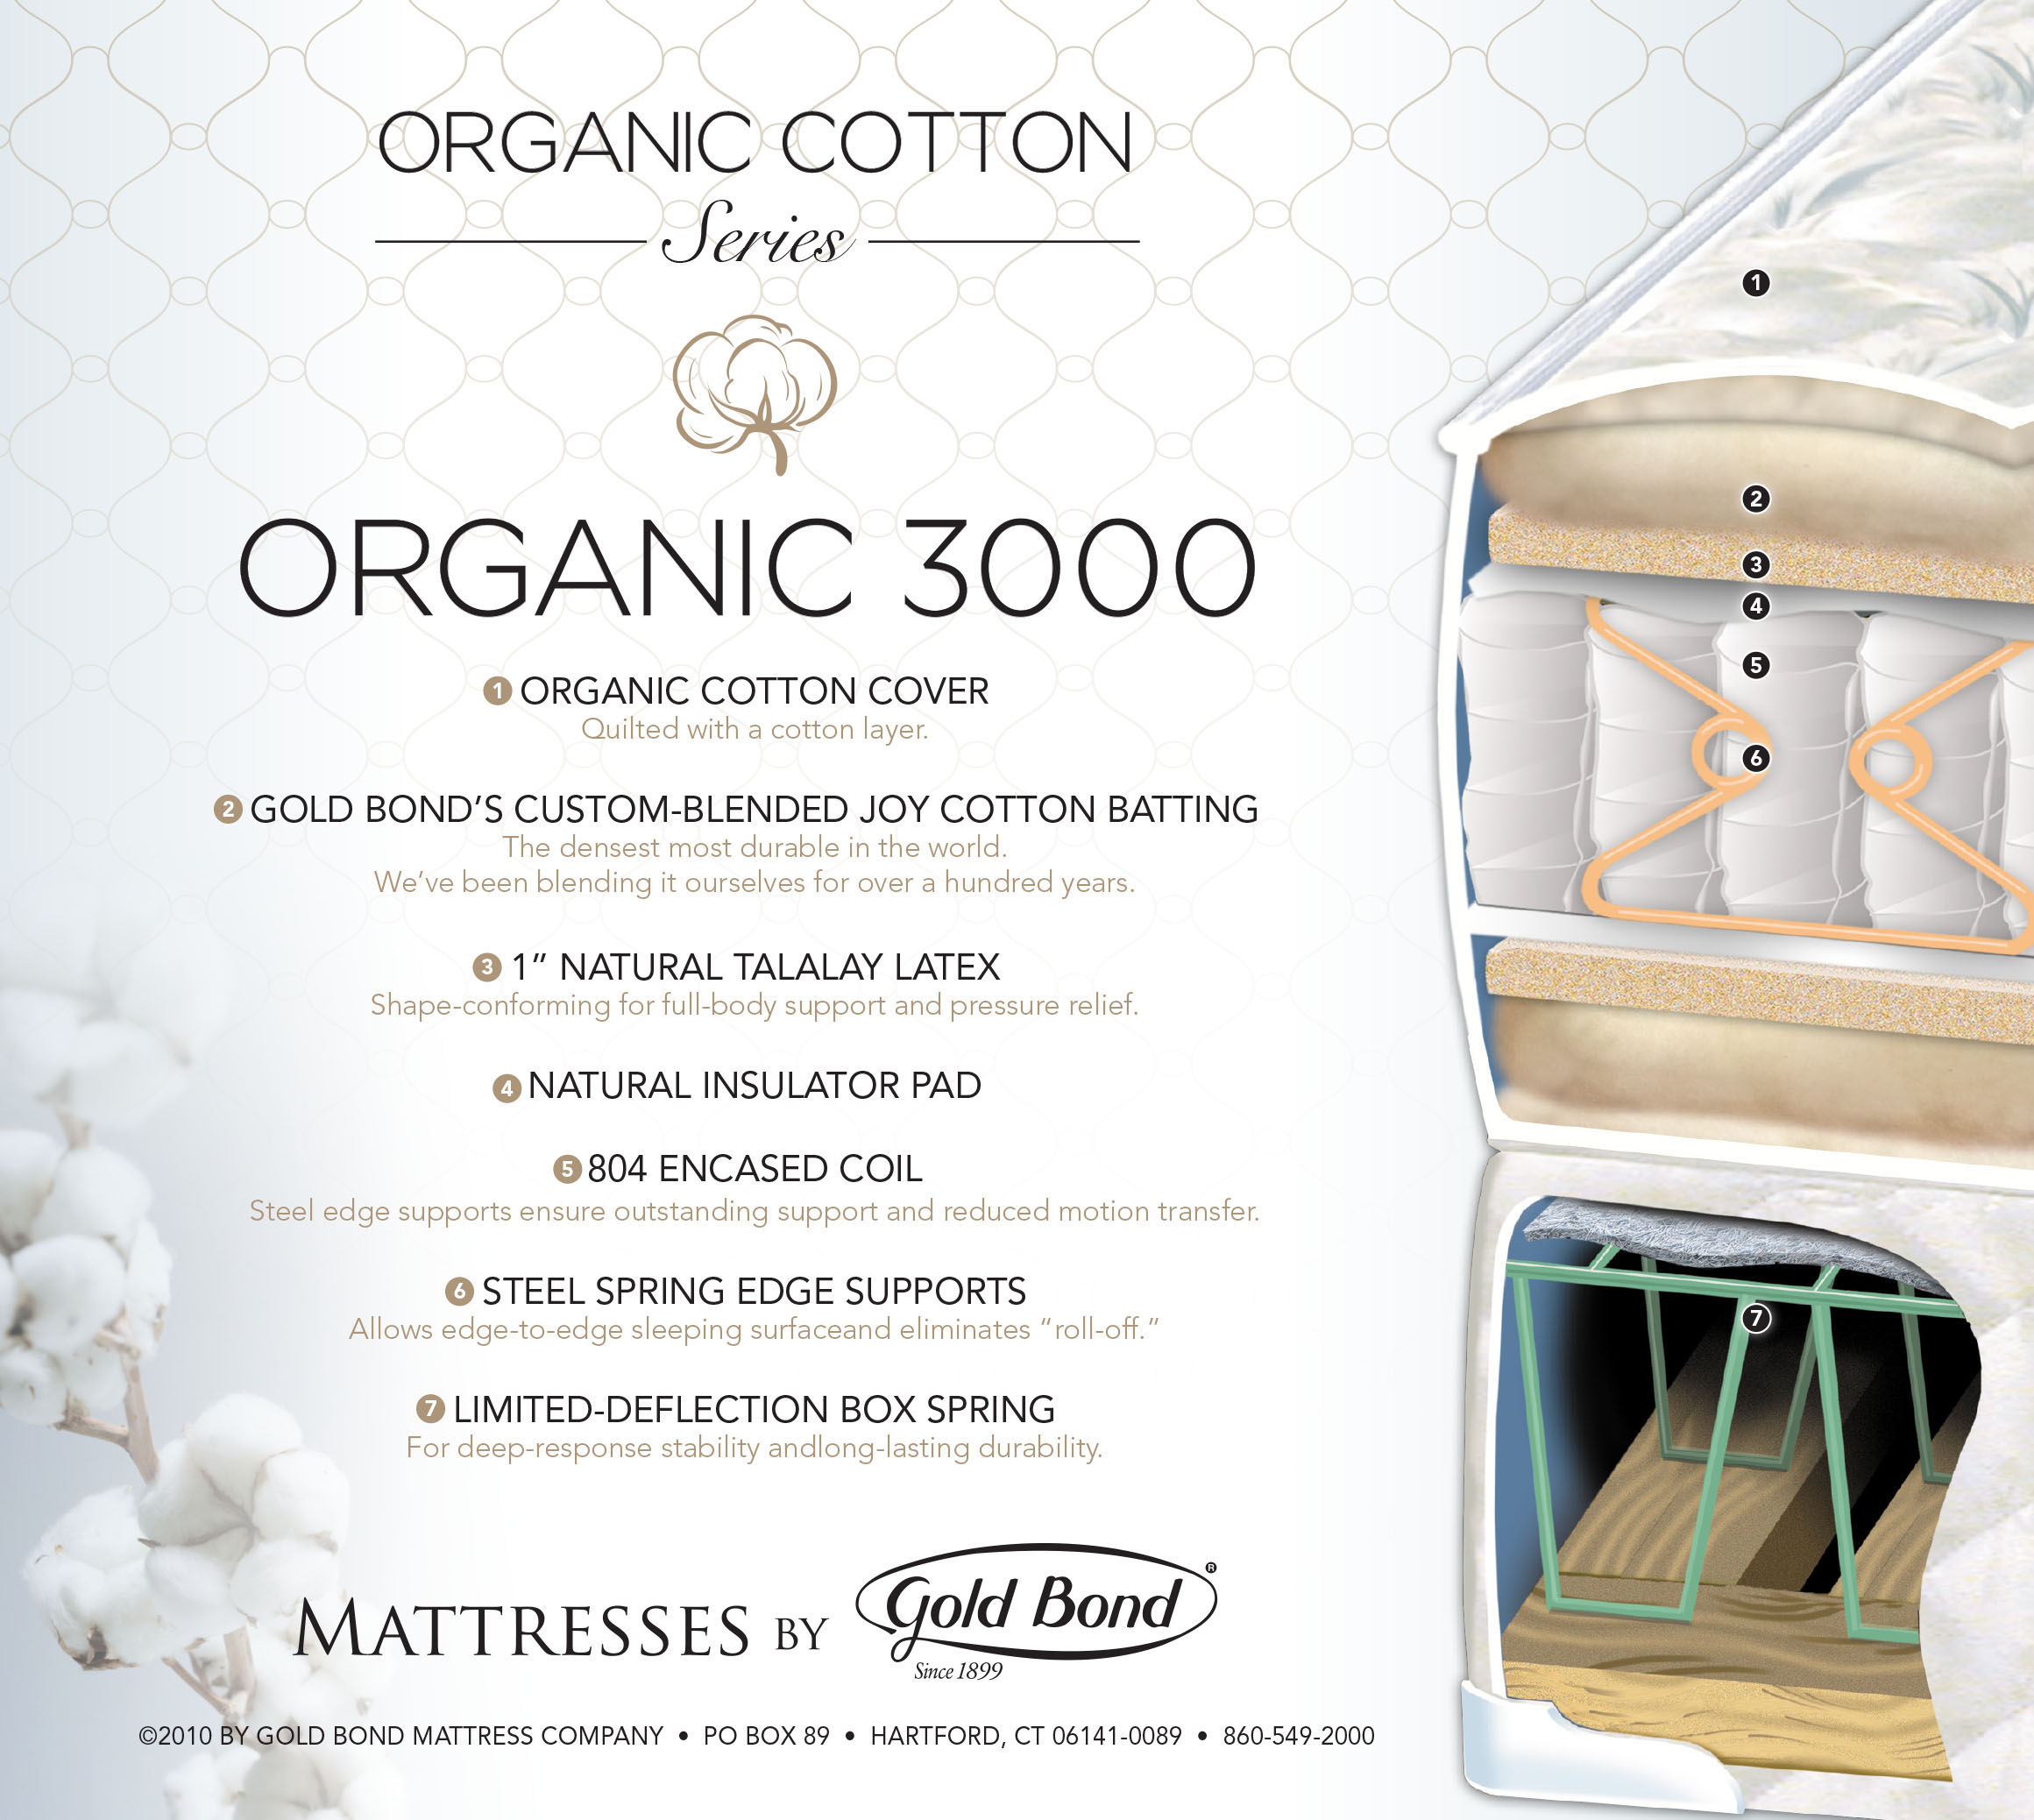 Gold Bond Organic 3000 Mattress